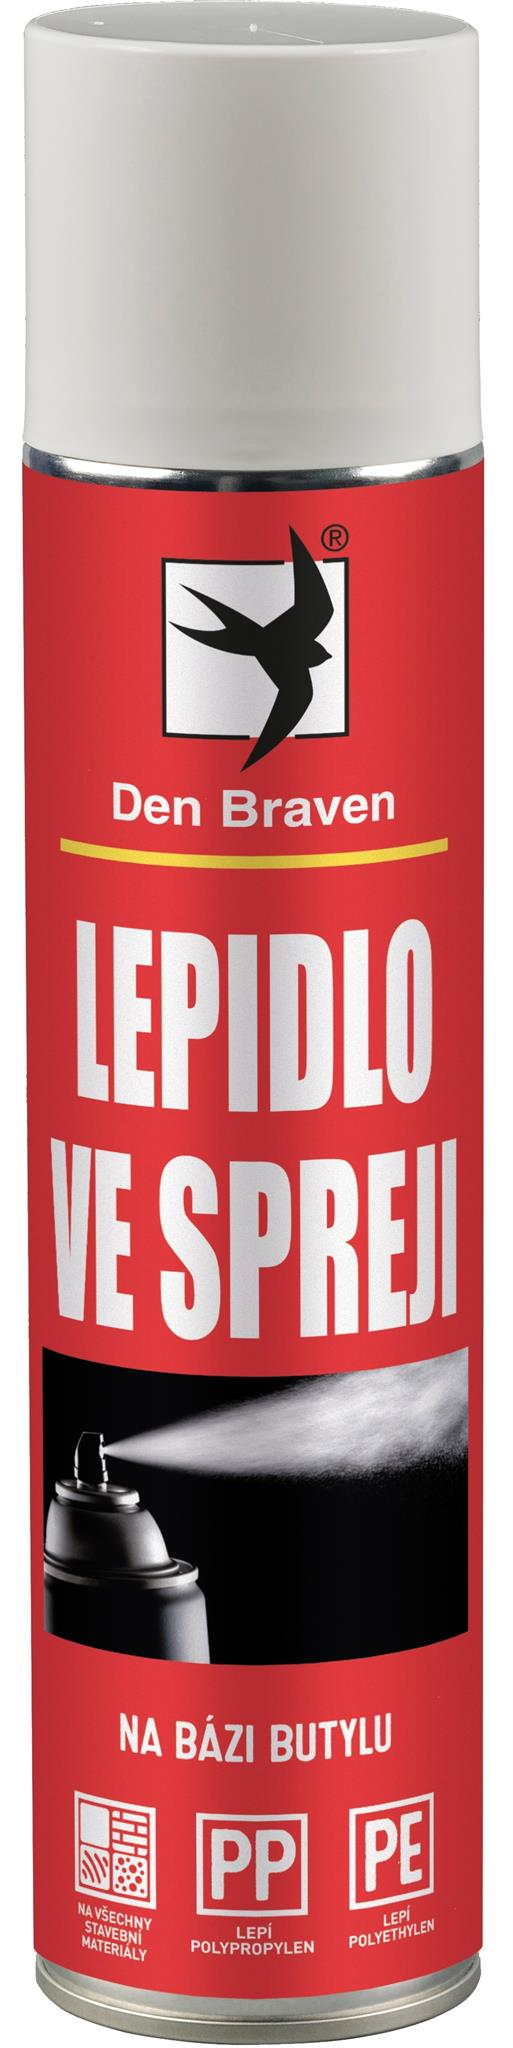 Lepidlo ve spreji Red line 400 ml